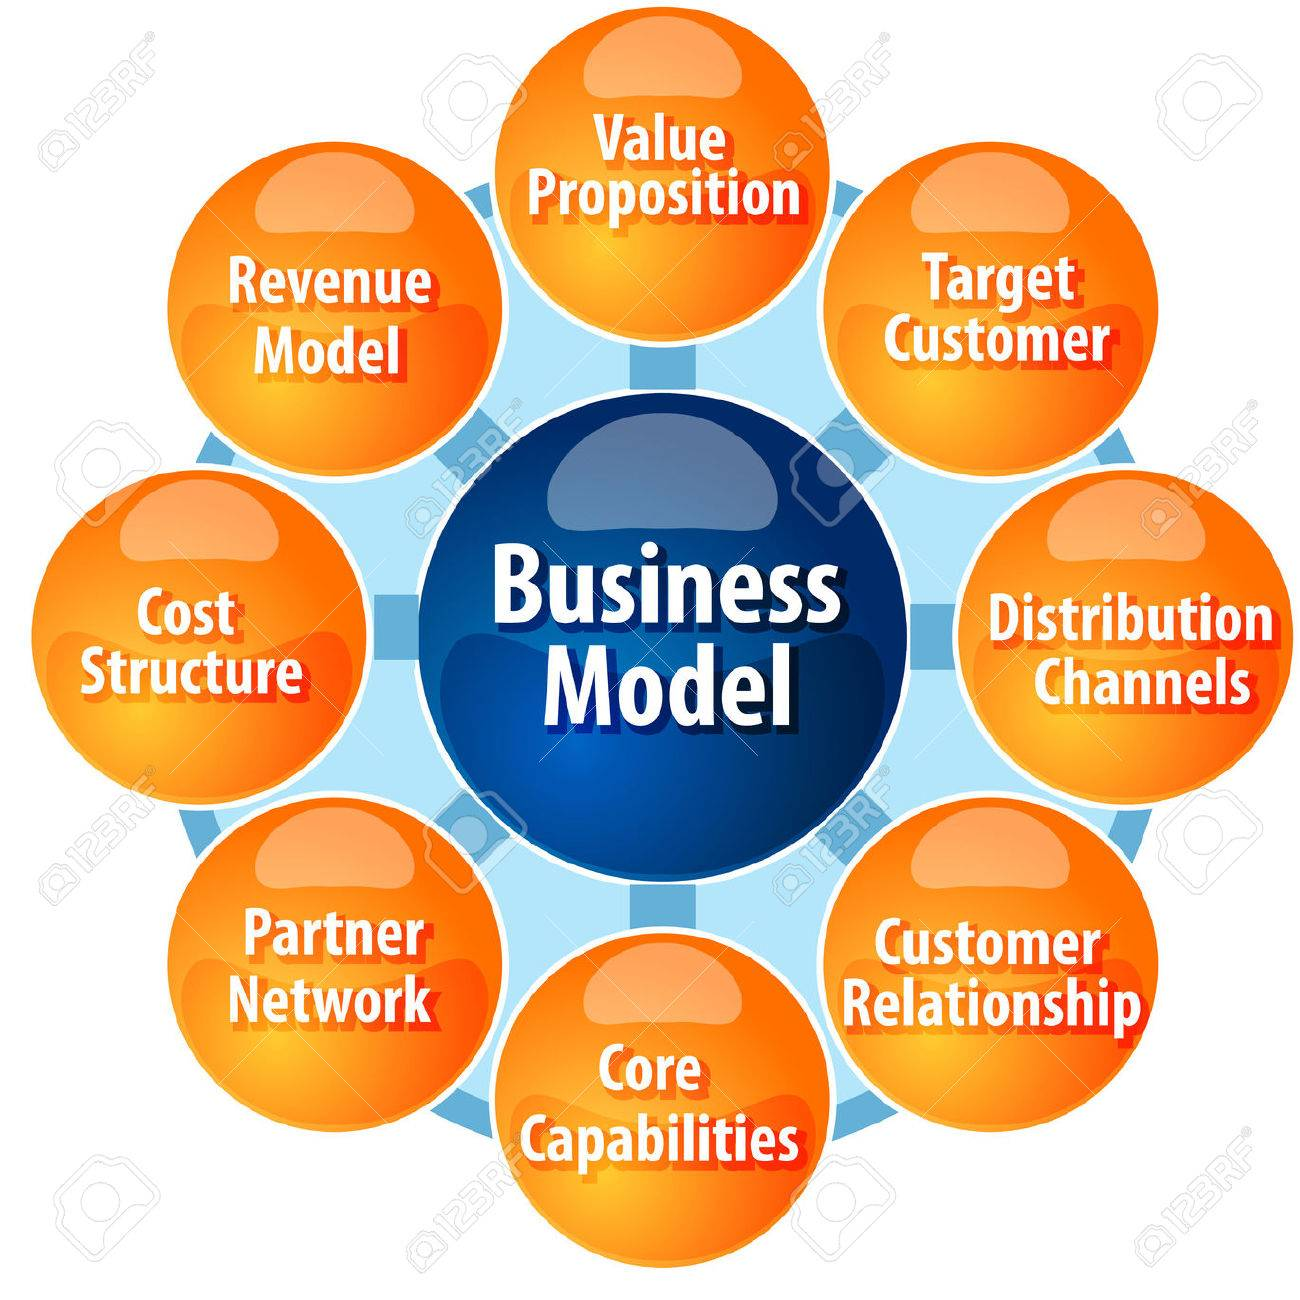 business strategy concept infographic diagram illustration of business model components parts - 39283410